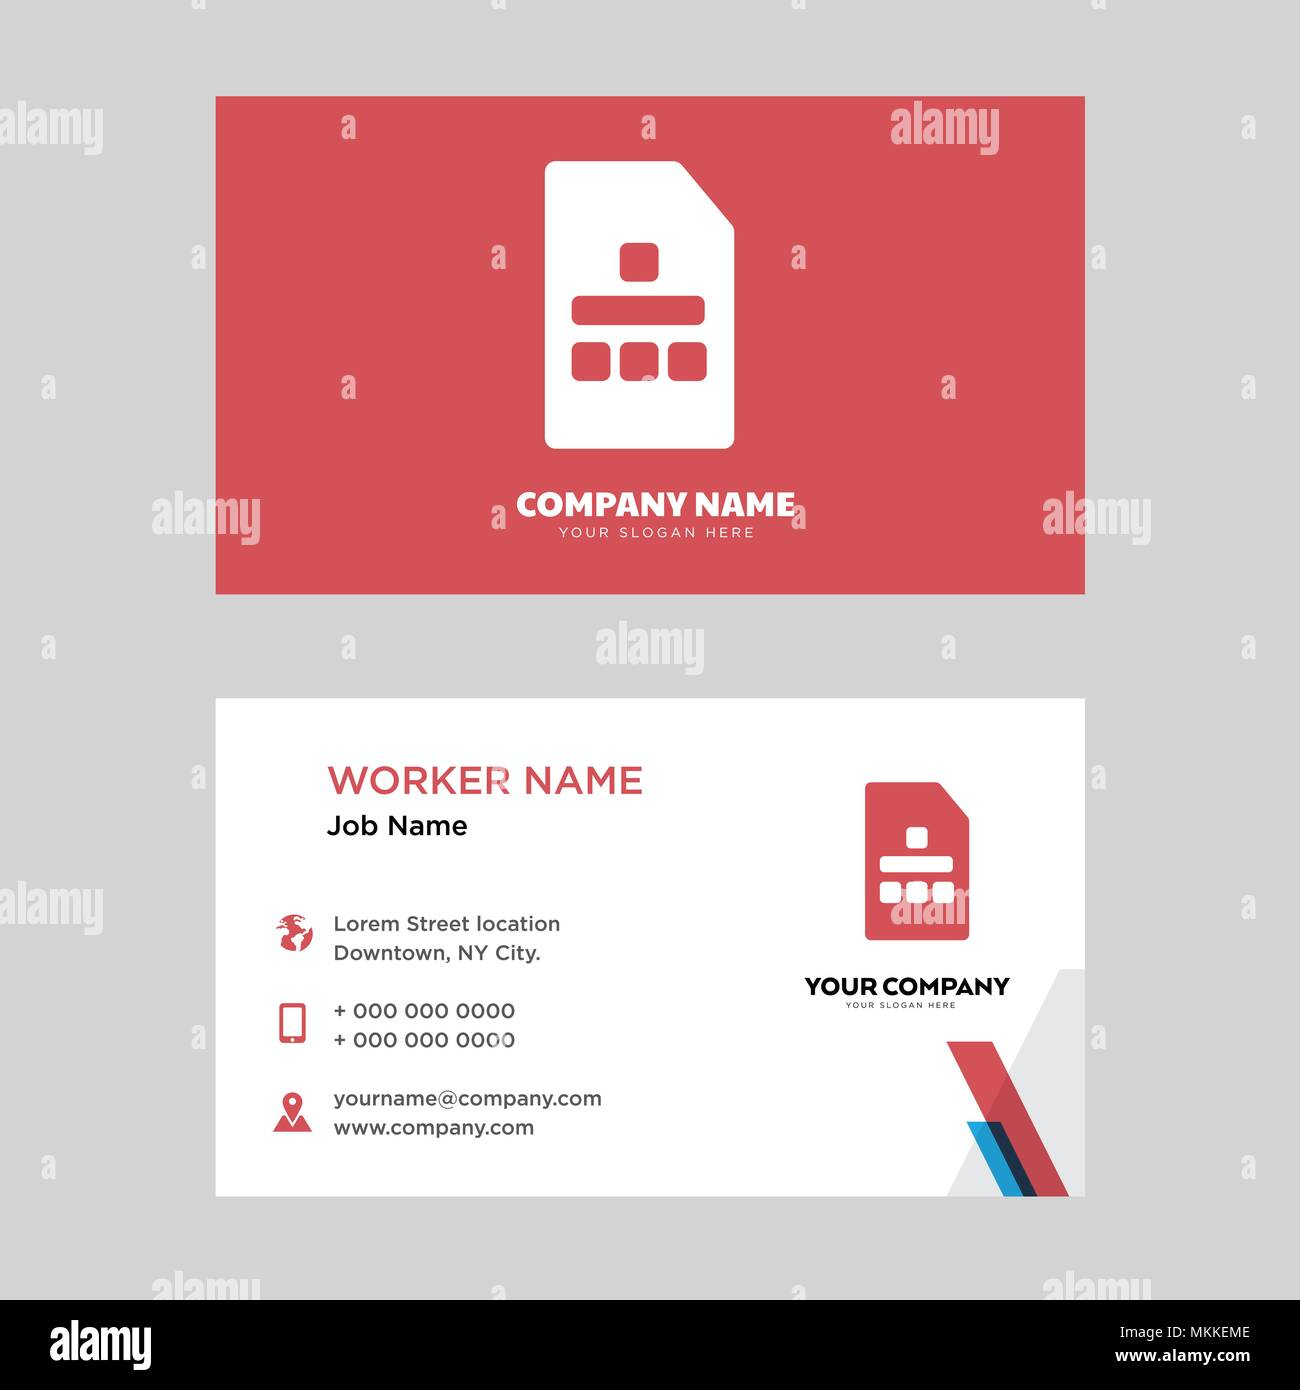 Sim card business design template, Visiting for your company, Modern ...